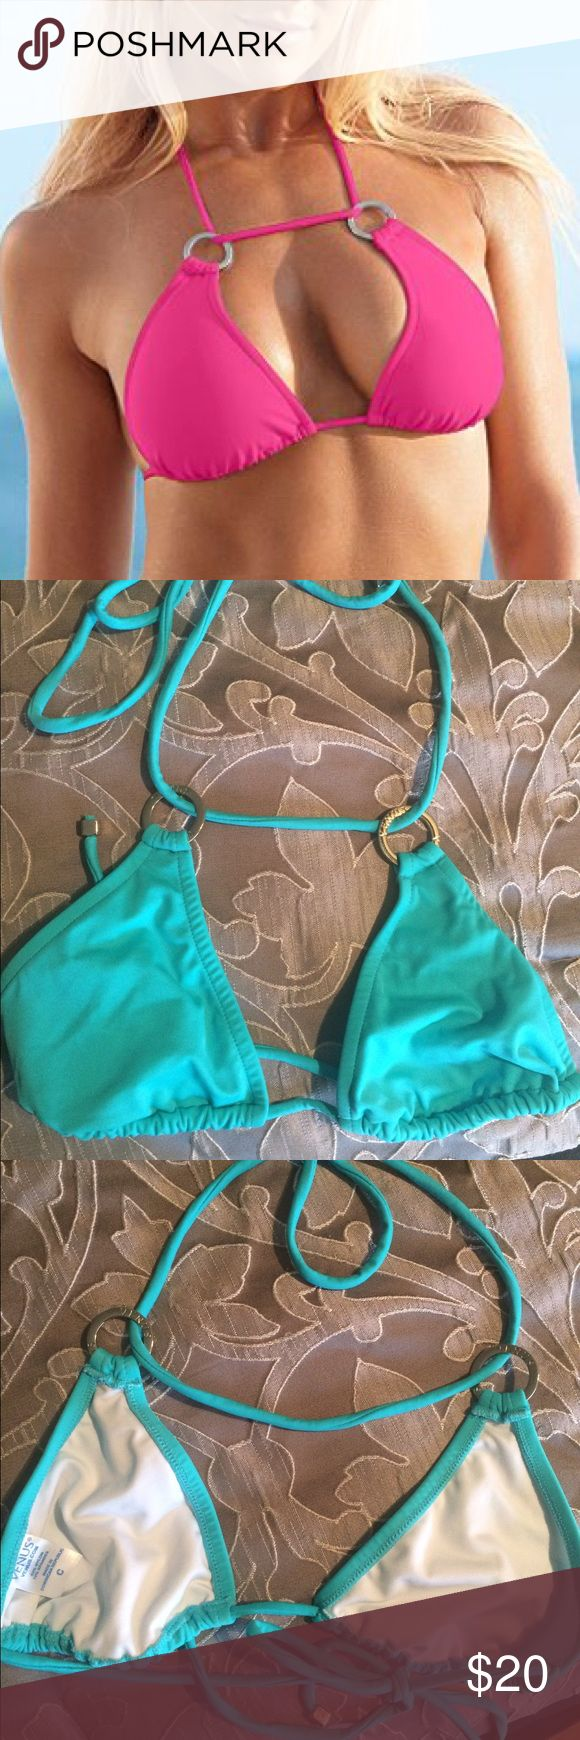 Blue multi-way halter bathing suit top Brand new never worn, it doesn't have tags. The one I am selling is an Agua blue top (not pink) Originally purchased from Venus. It says it's a size 36c but it runs small and it isn't padded so it didn't work for me but it's a cute style. It ties at the neck and on the back. Venus  Swim Bikinis